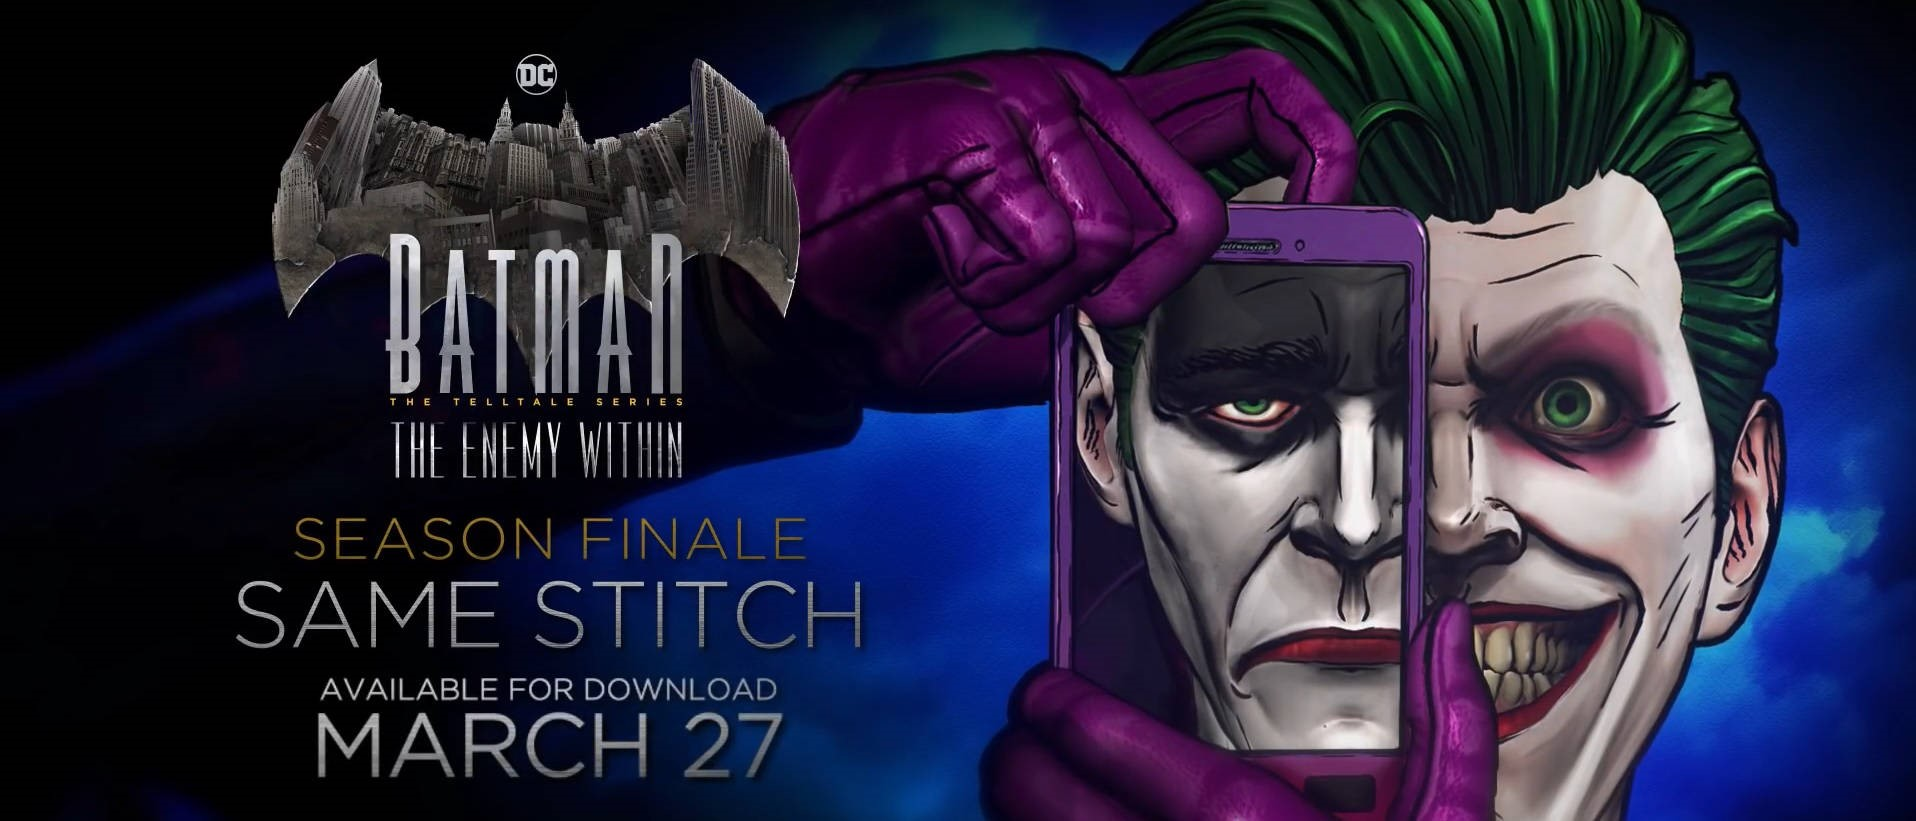 El episodio 5 de Batman: The Enemy Within disponible el 27 de marzo en Windows 10 y Xbox One